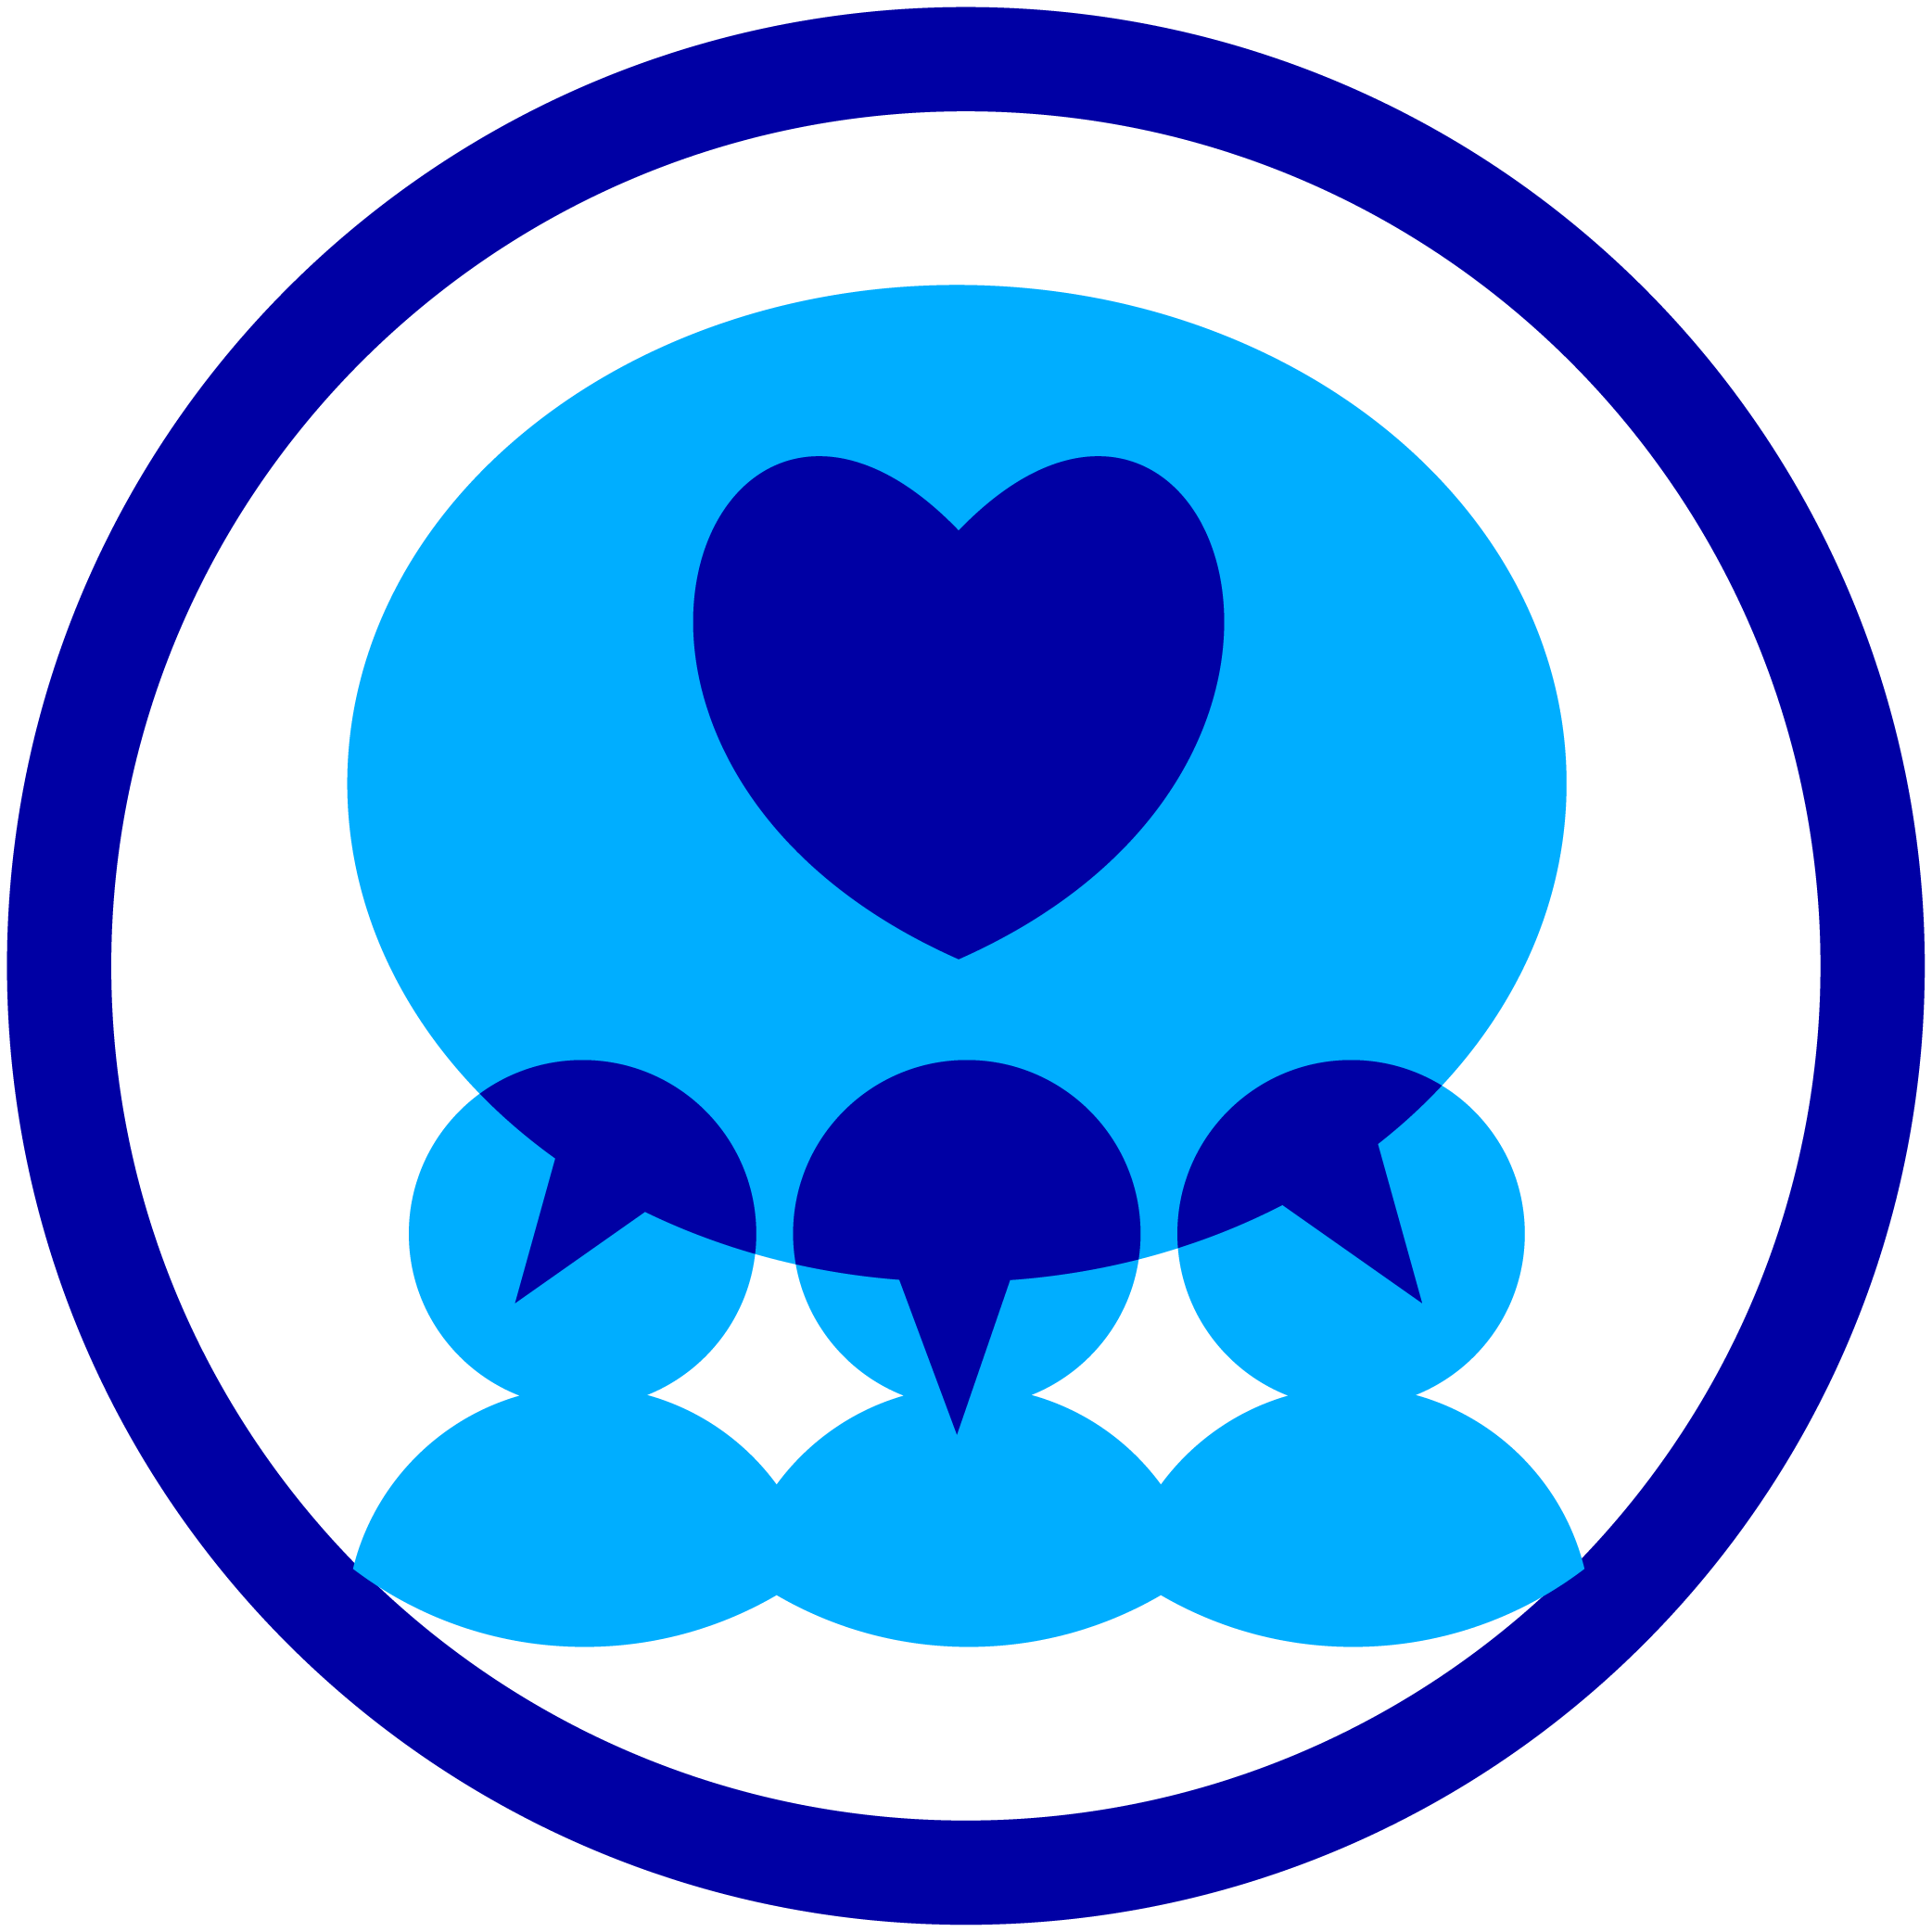 https://us.fi-group.com/wp-content/uploads/sites/16/2021/02/blue-icons-set_1-54.png